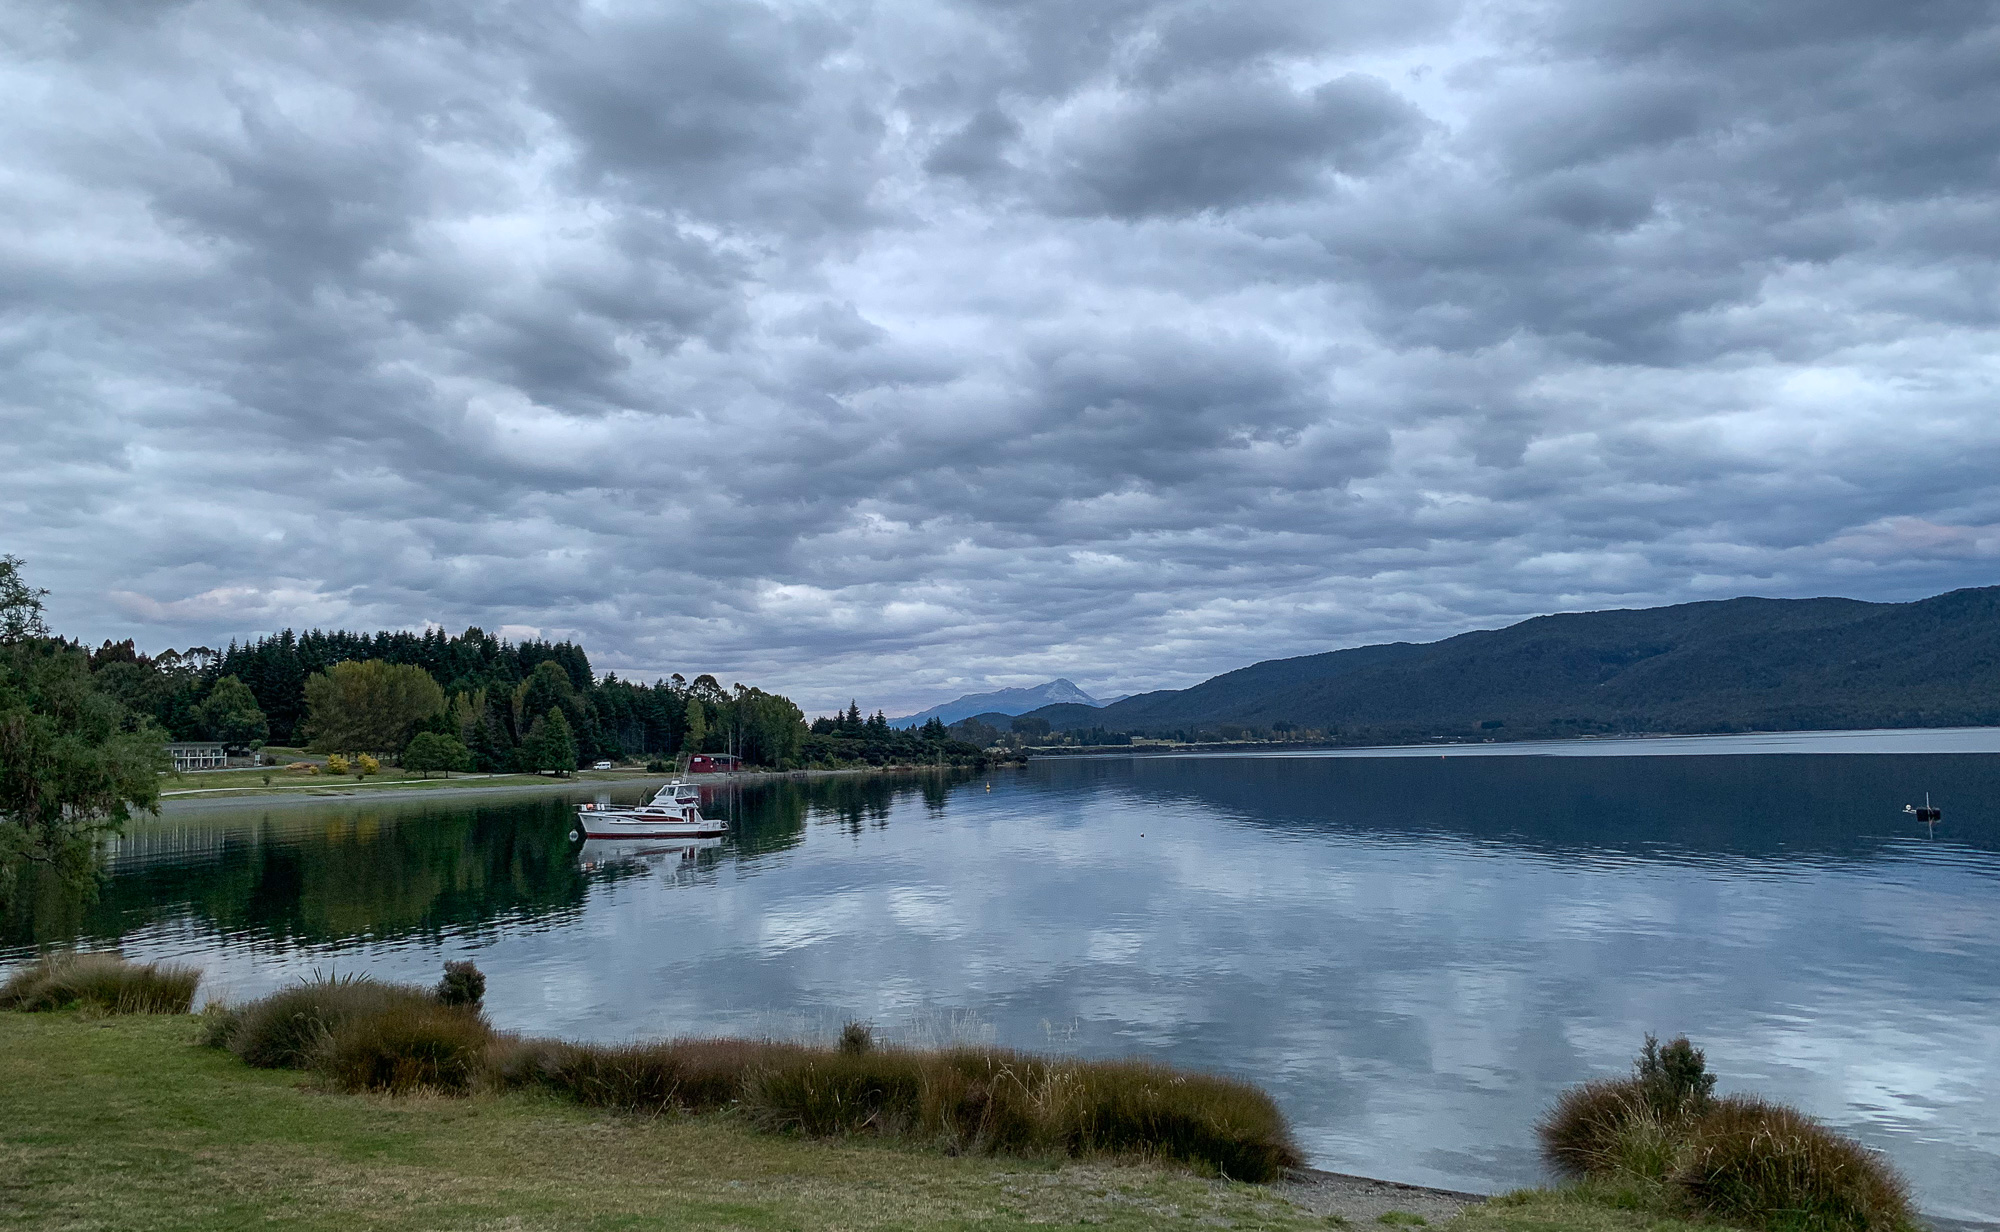 Small boat on the water at Lake Te Anau